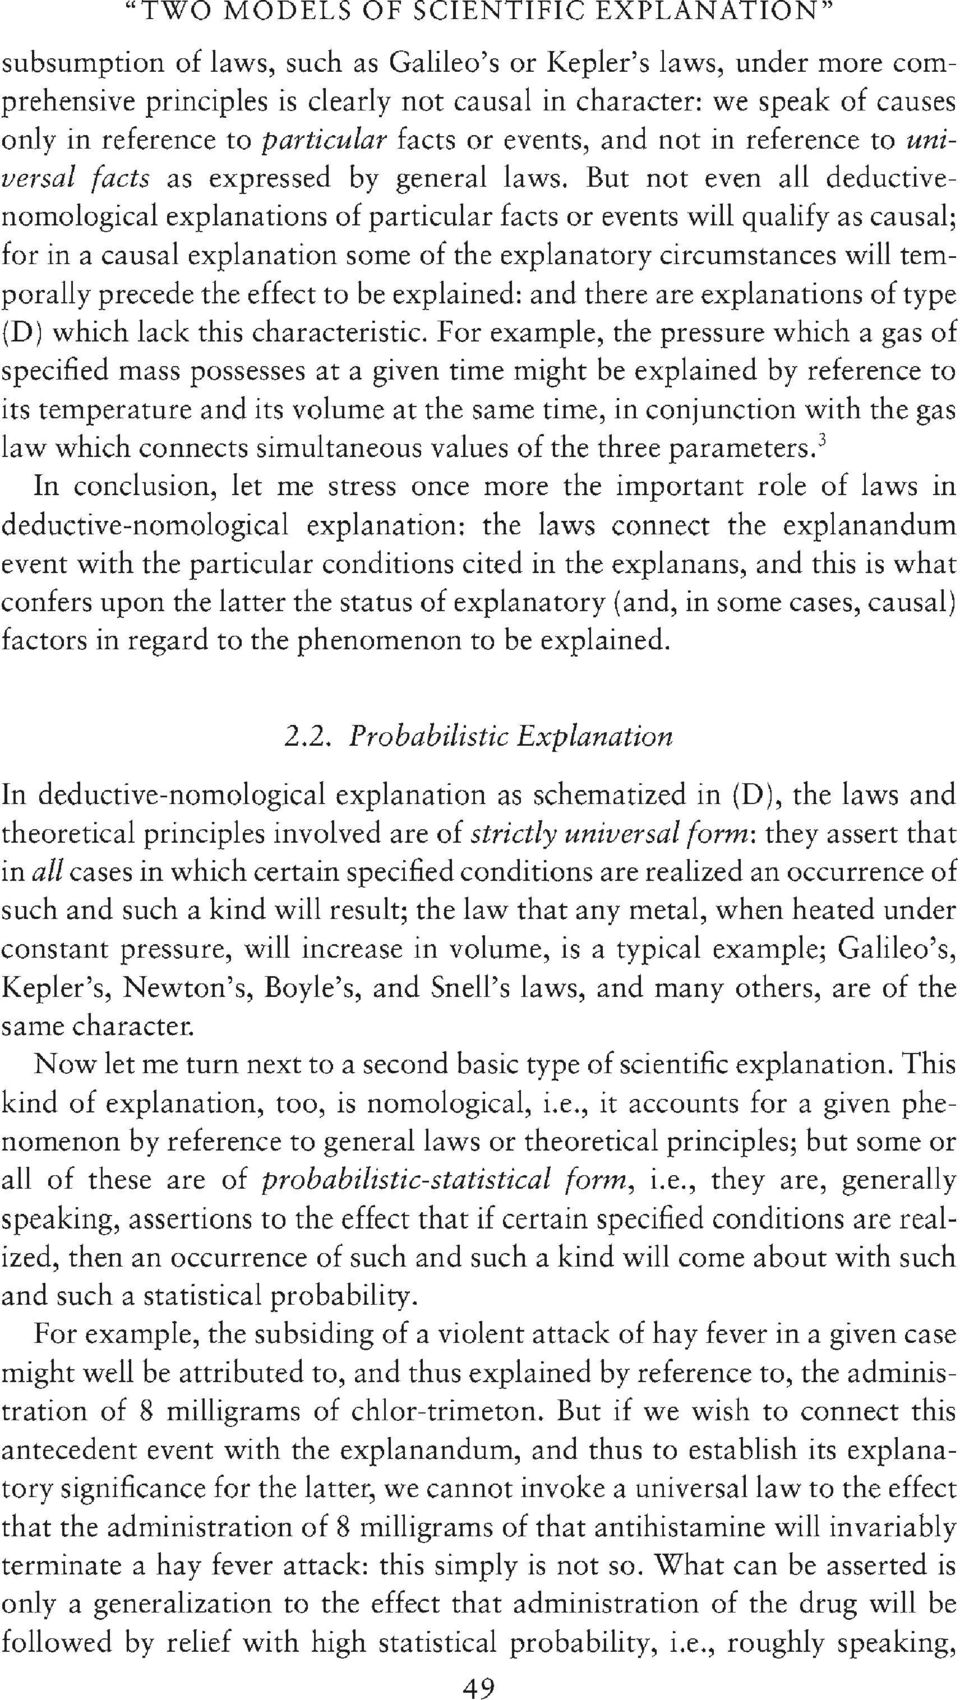 But not even all deductivenomological explanations of particular facts or events will qualify as causal; for in a causal explanation some of the explanatory circumstances will temporally precede the